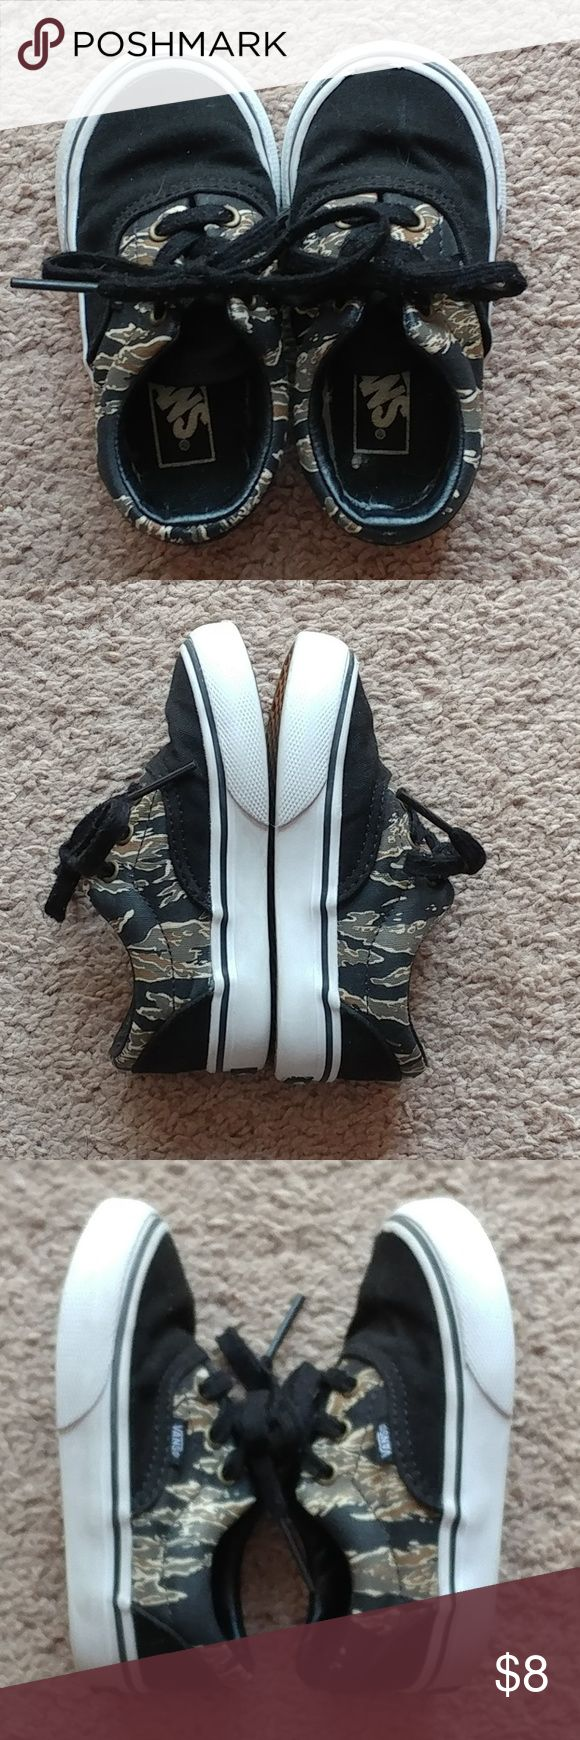 """Toddler Boys Vans tennis shoes Pre-owned. Black/camo. Small issue with trim on right shoe at the top. 6"""" from toe to heel. Vans Shoes Sneakers"""